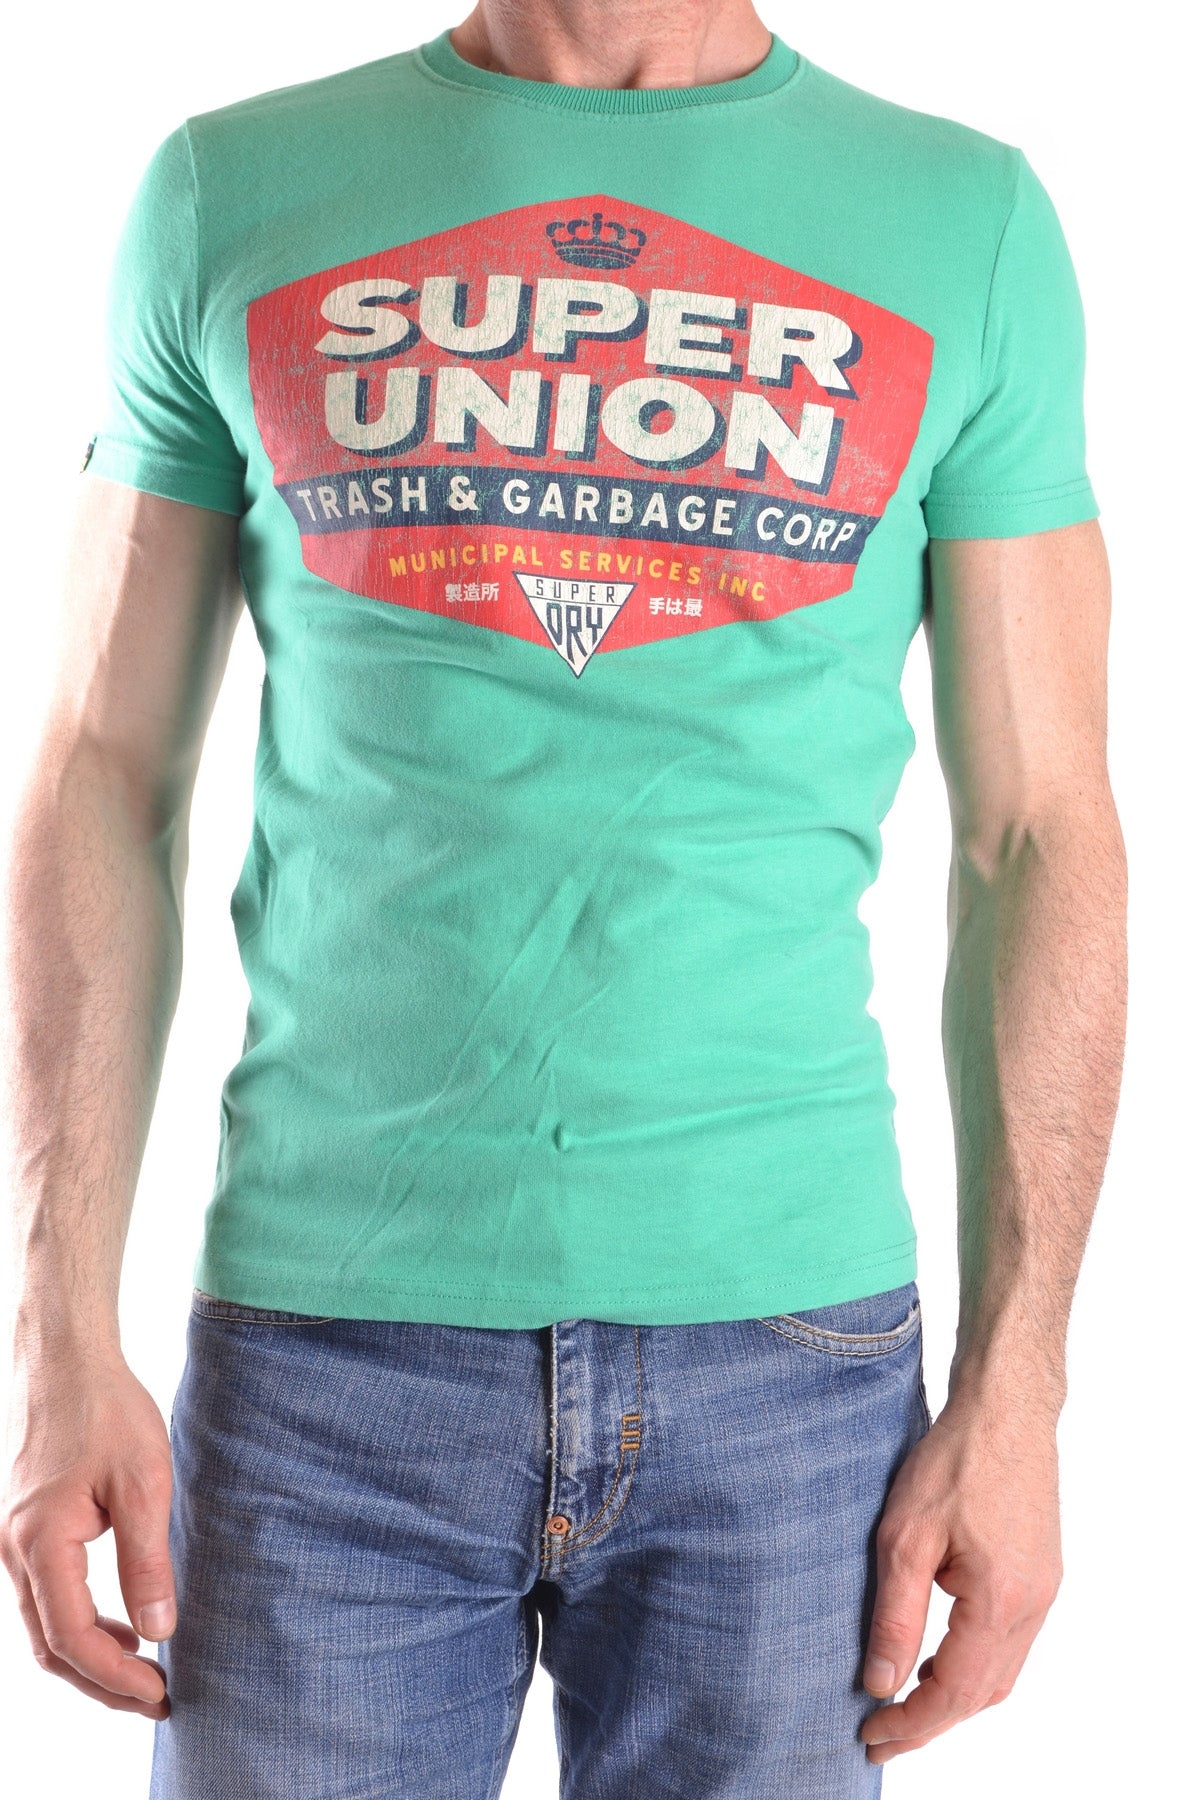 T-Shirt Superdry-Men's Fashion - Men's Clothing - Tops & Tees - T-Shirts-XS-Product Details Terms: New With LabelClothing Type: T-ShirtMain Color: GreenSeason: Spring / SummerMade In: TurcheyGender: ManSize: IntComposition: Cotton 100%Year: 2017-Keyomi-Sook